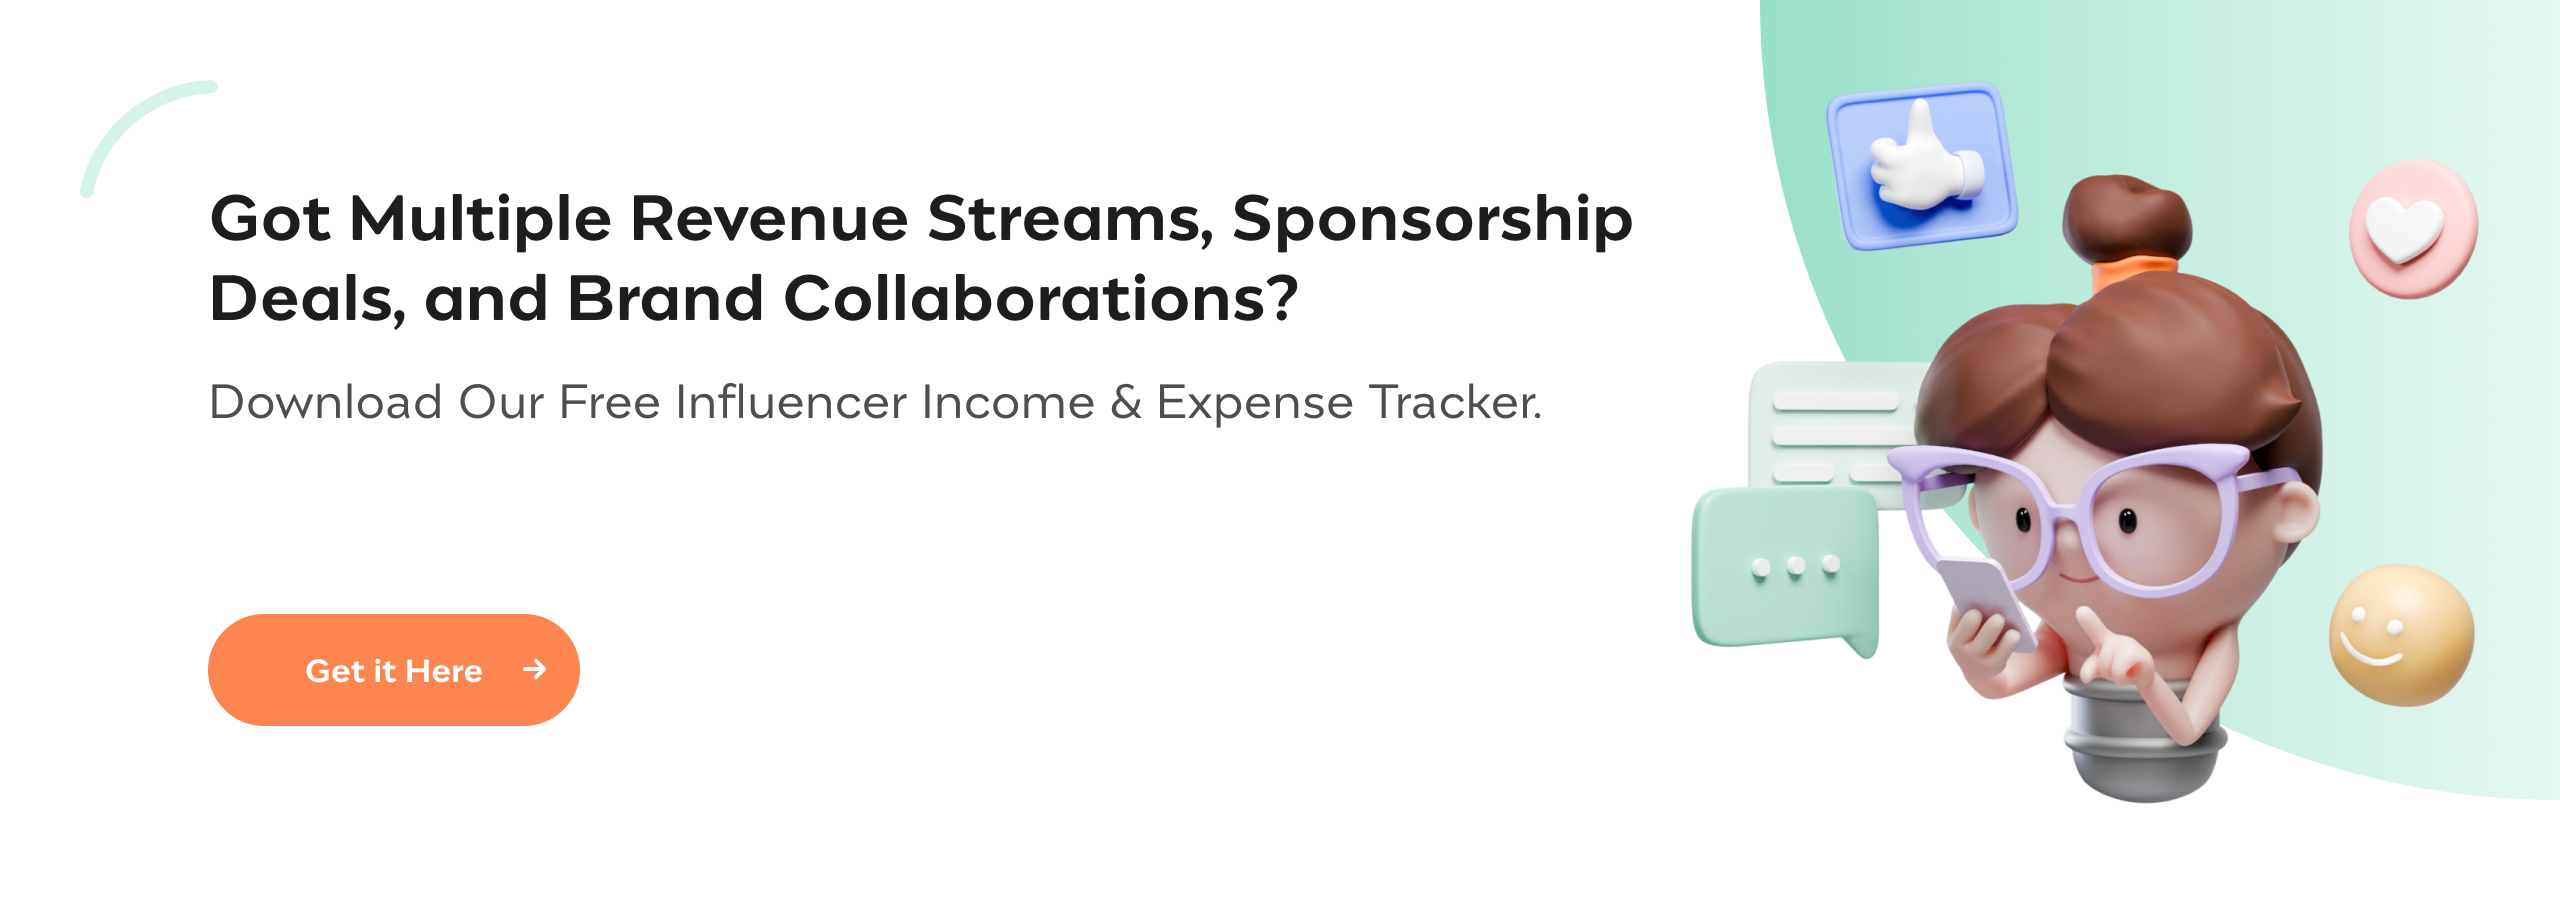 Influencer Income and Expense Tracker   Incfile